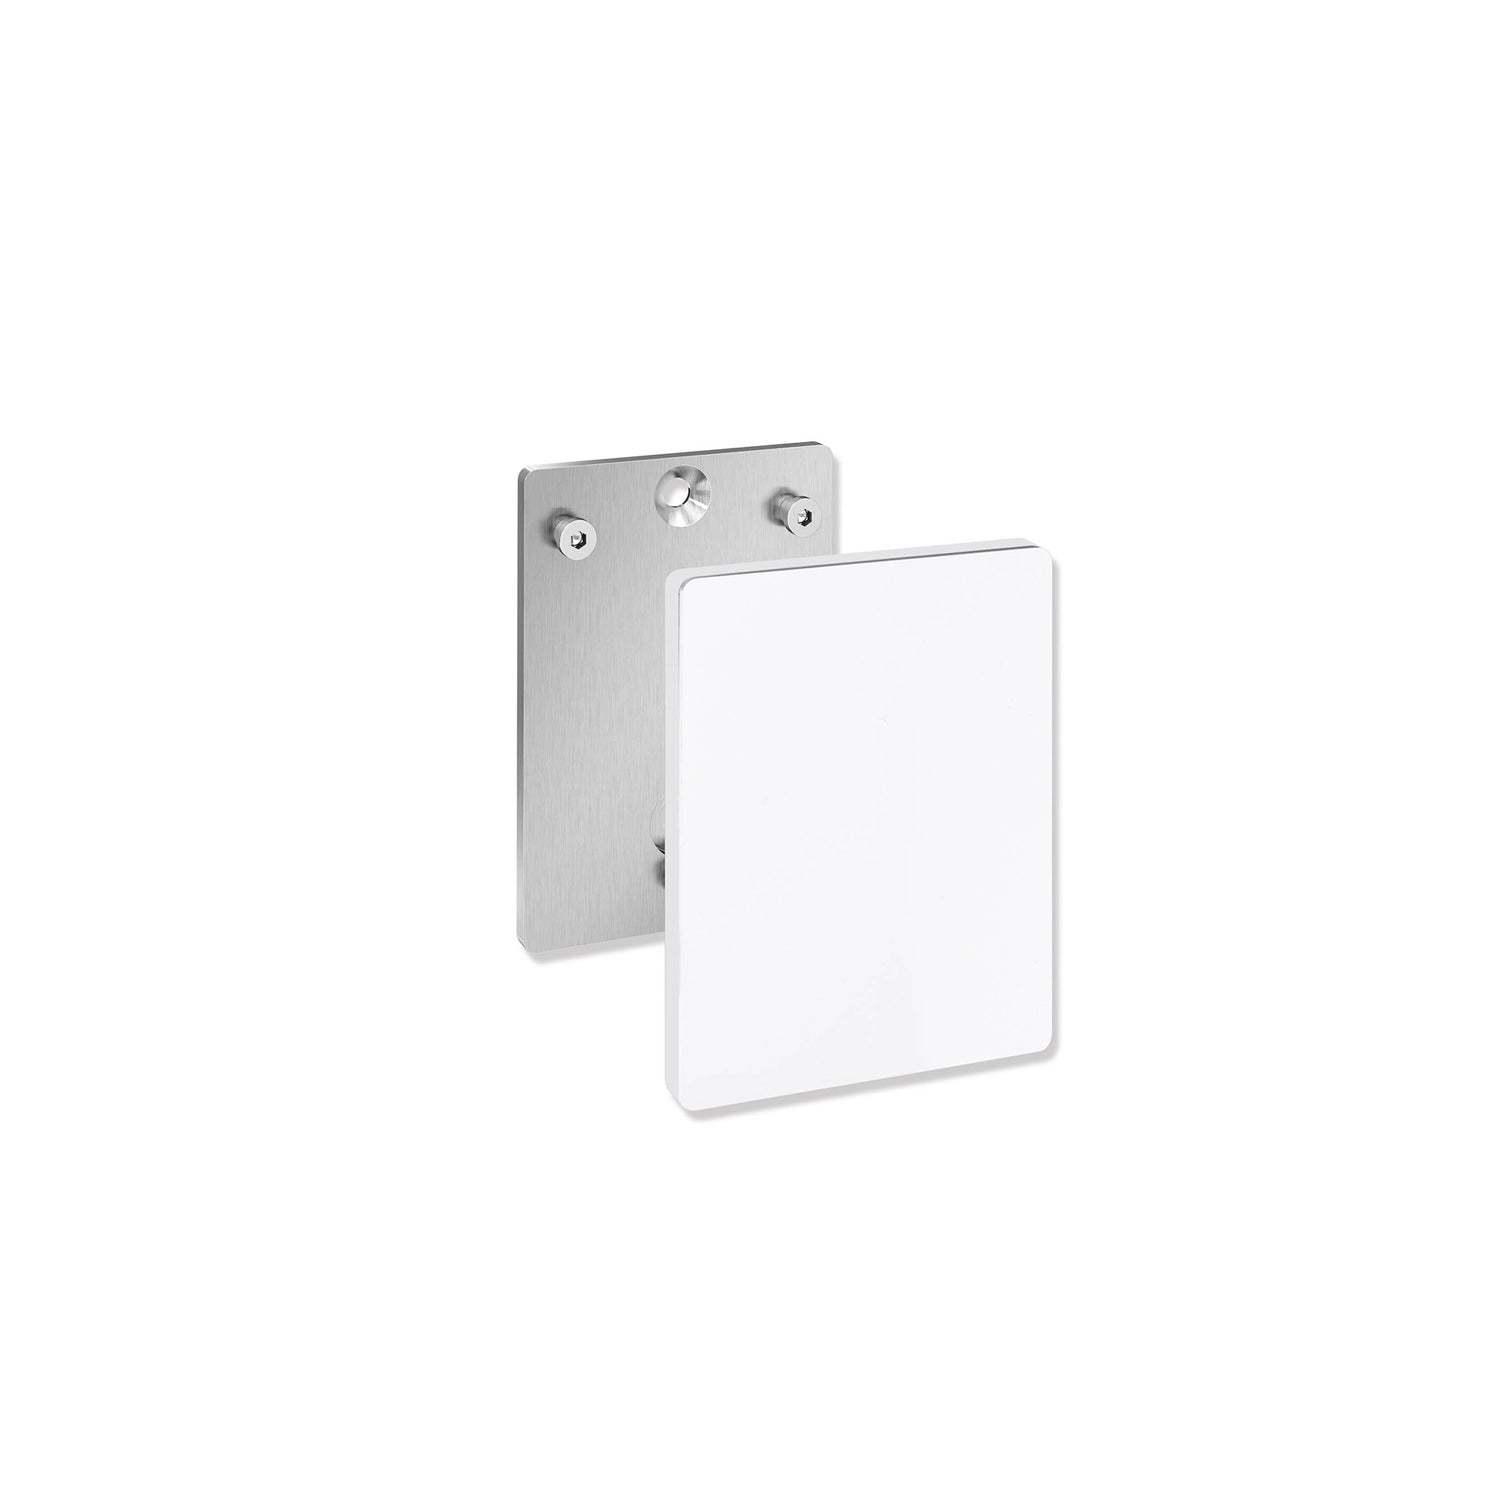 Circula Removable Hinged Grab Rail Mounting Plate and Cover with a white finish on a white background